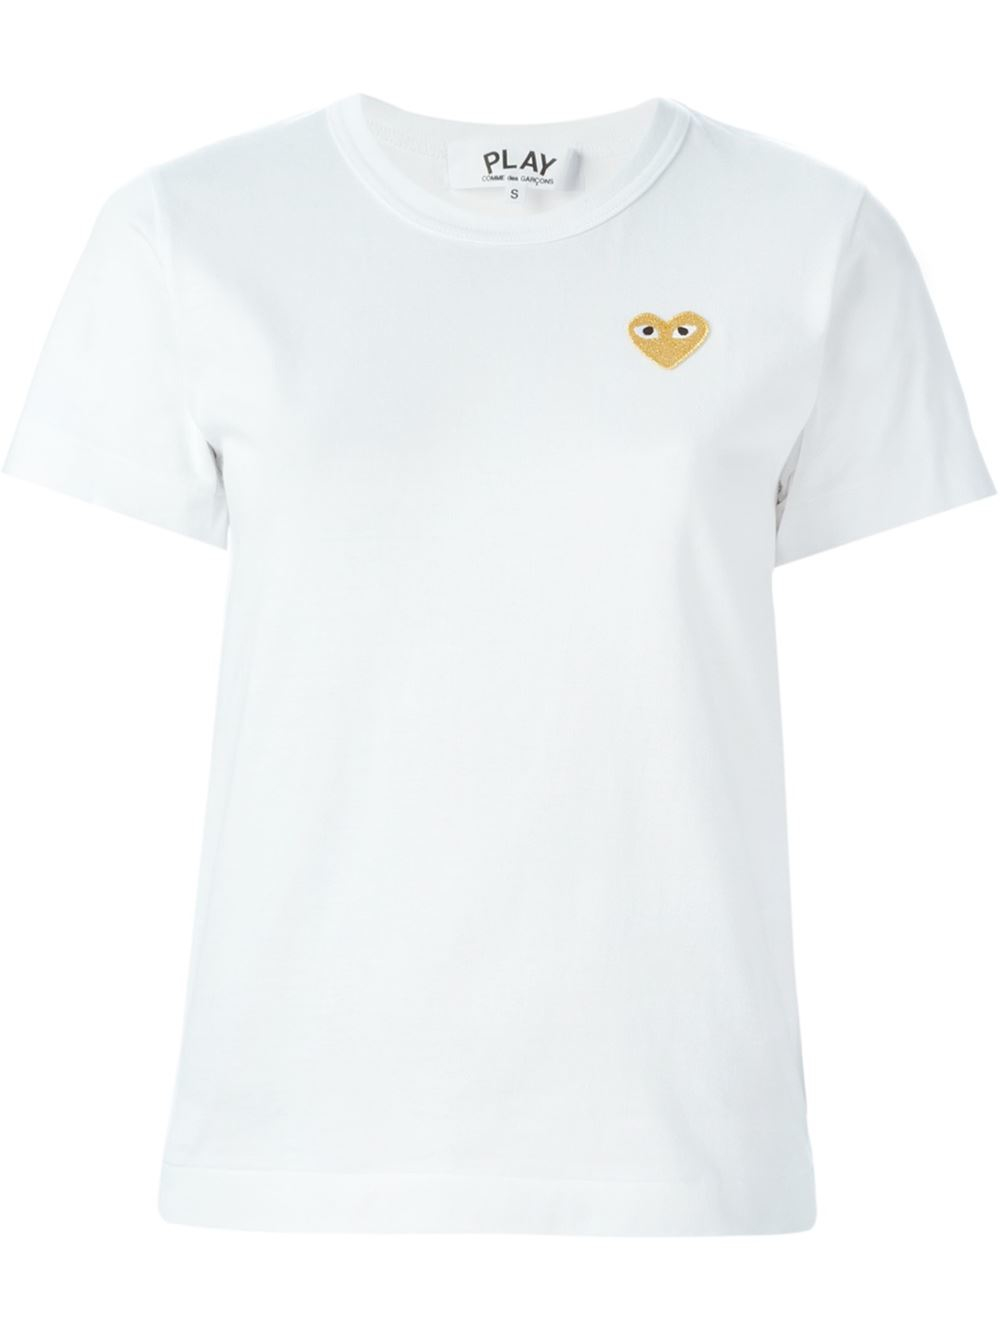 play comme des gar ons embroidered logo t shirt in white. Black Bedroom Furniture Sets. Home Design Ideas